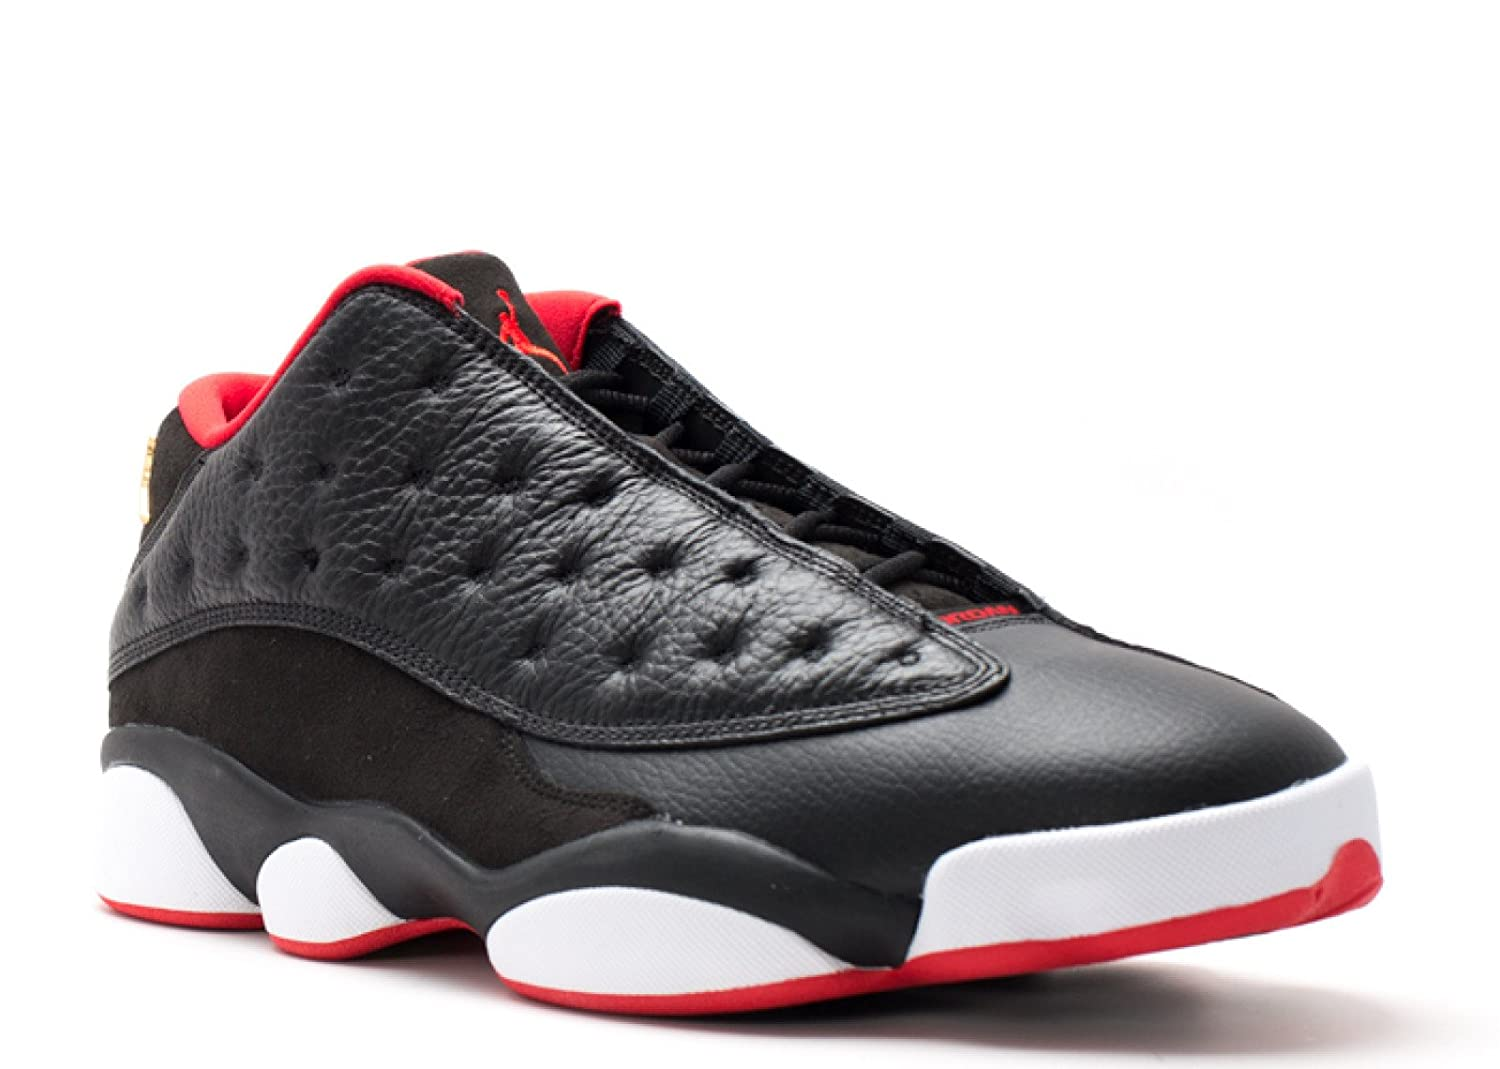 e9dfad0d746 Nike AIR Jordan 13 Retro Low 'BRED' - 310810-027: Amazon.ca: Shoes &  Handbags